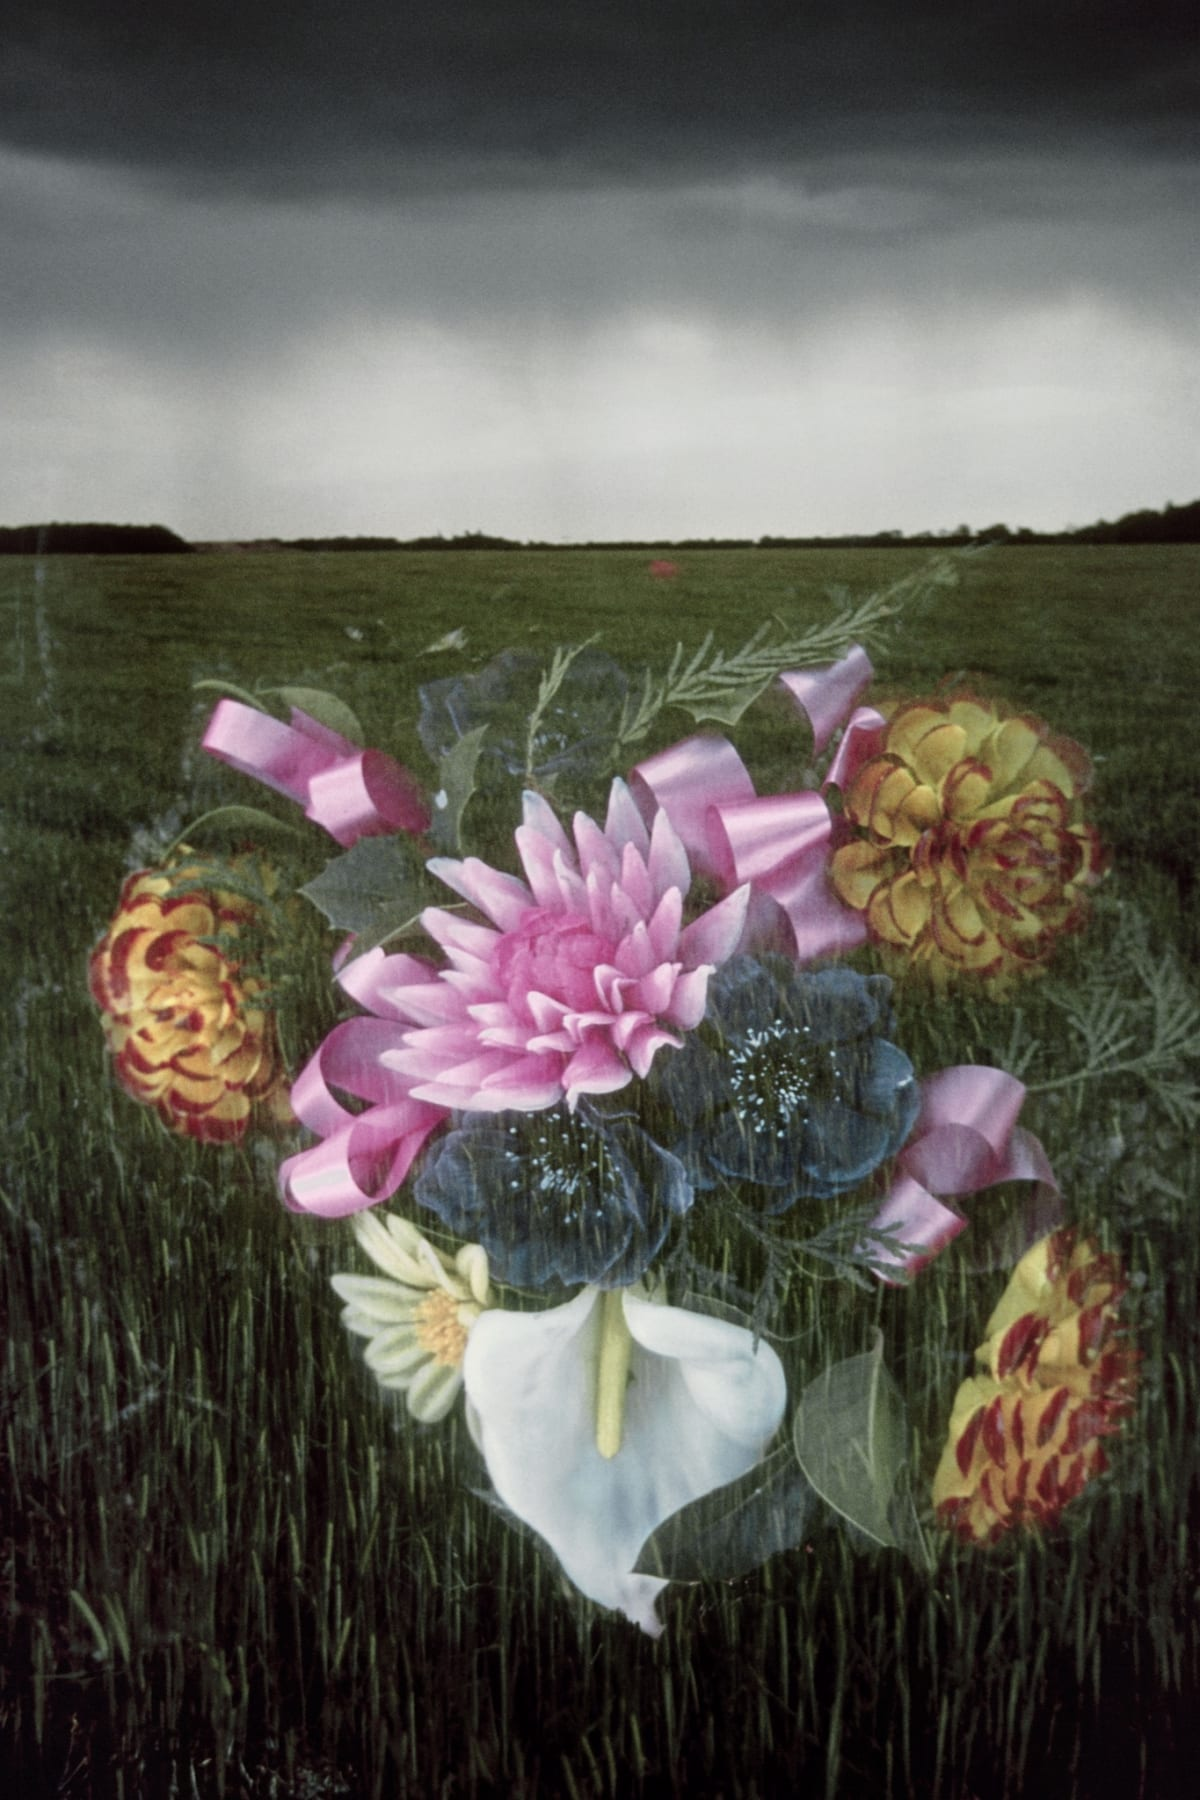 Jo SPENCE The Final Project [Flowers], 1991 - 1992 Digital print from medium format colour neg 134 x 90 cm Edition of 2 plus 1 Estate Copy